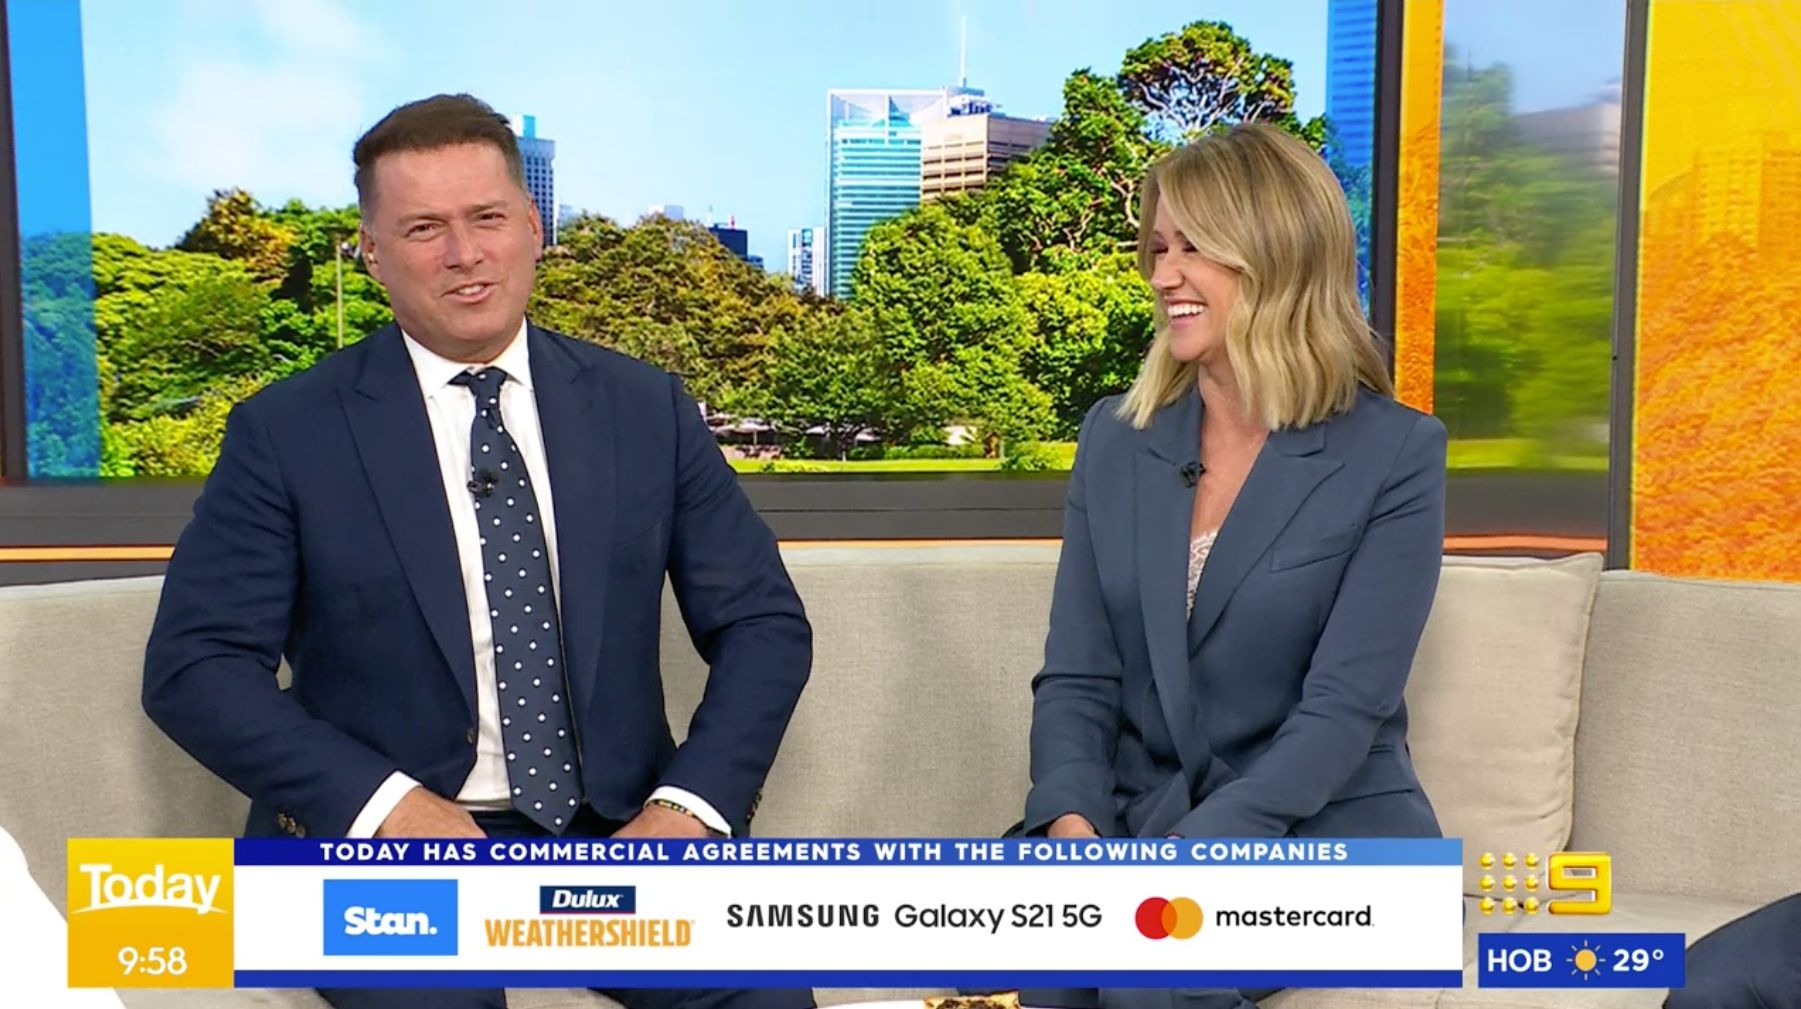 Karl Stefanovic and Leila McKinnon on the'Today' show Thursday